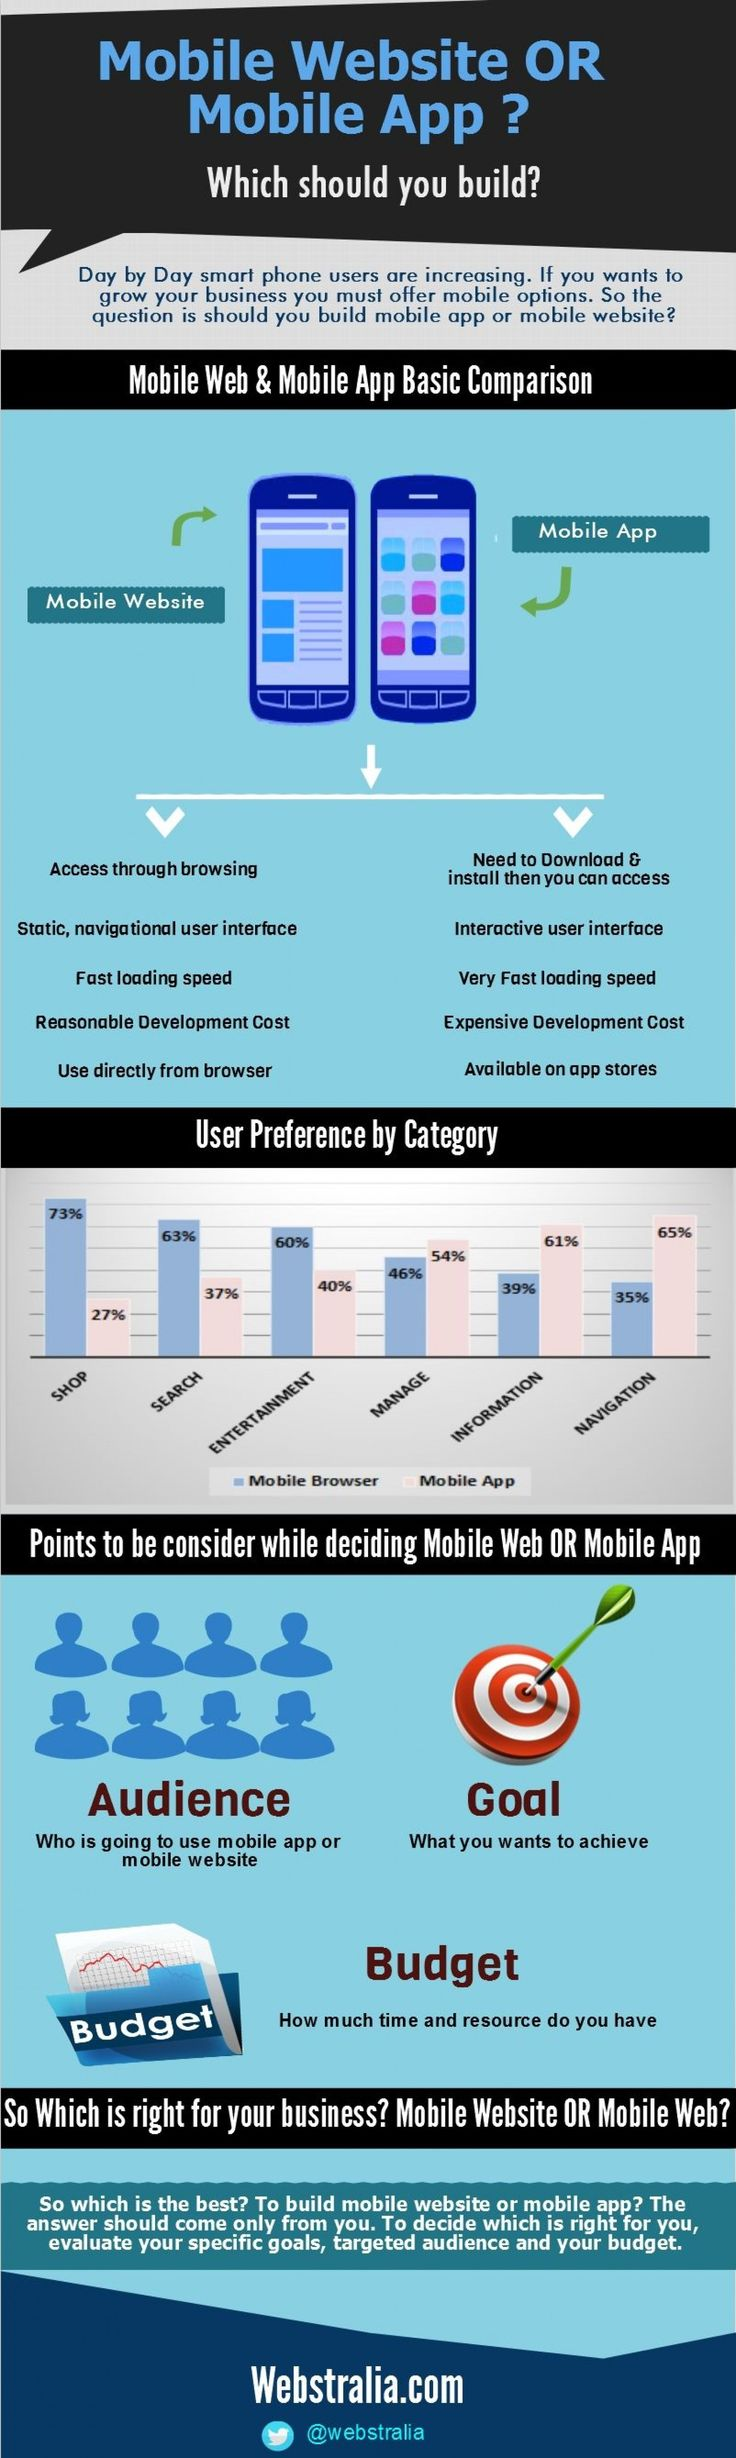 Day by Day smart phone users are increasing. If you wants to grow your business you must offer mobile options. So the question is should you build #mobile_app or #mobile_website? This Infographic Shows comparison between mobile app and mobile website.